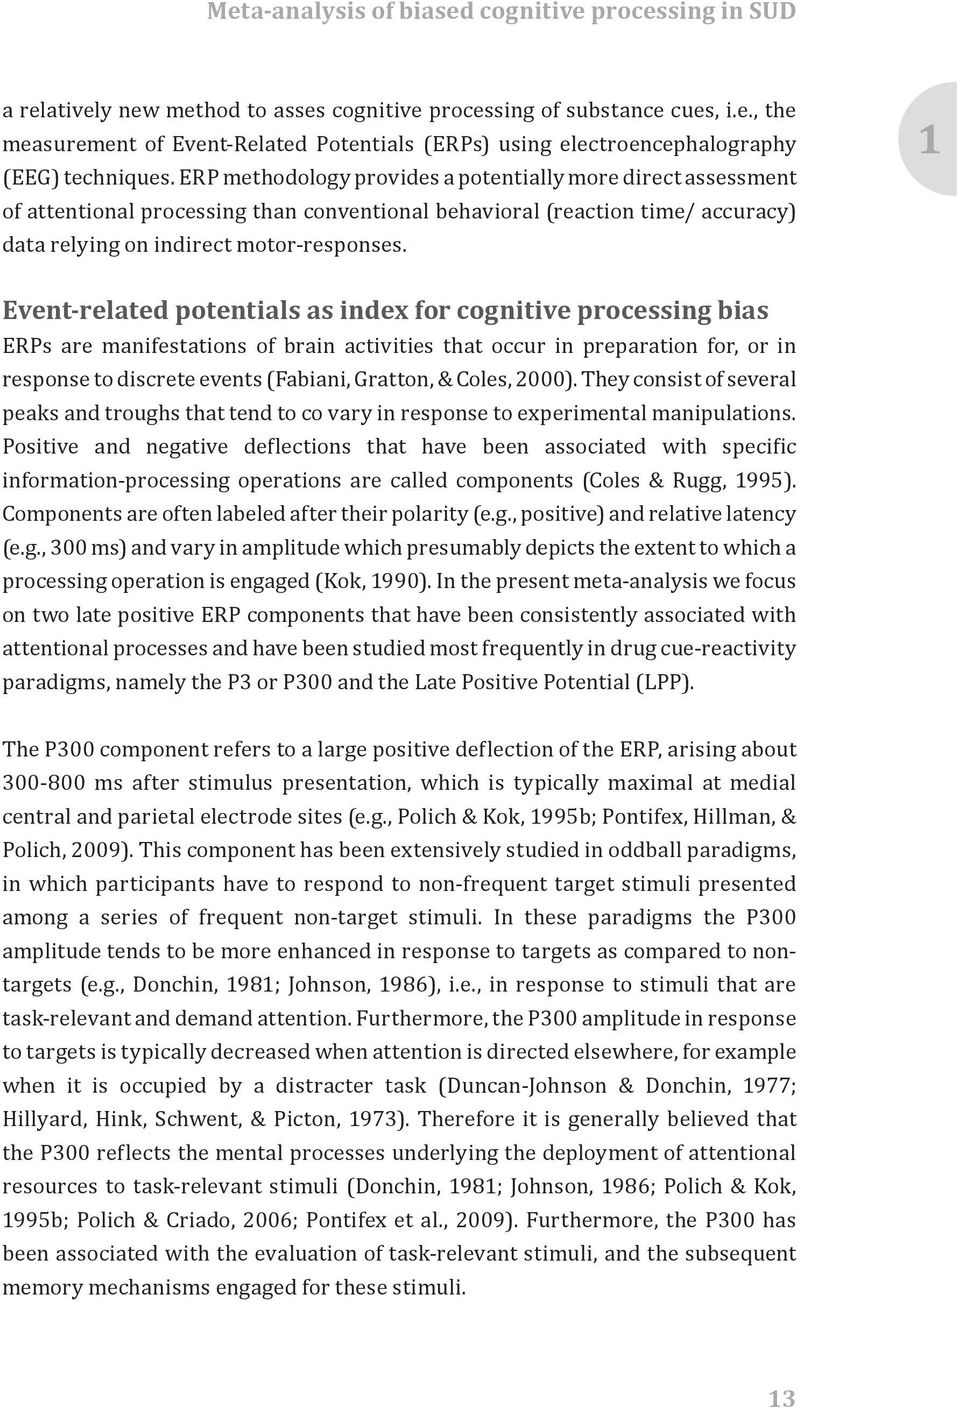 Event-related potentials as index for cognitive processing bias ERPs are manifestations of brain activities that occur in preparation for, or in response to discrete events (Fabiani, Gratton, &